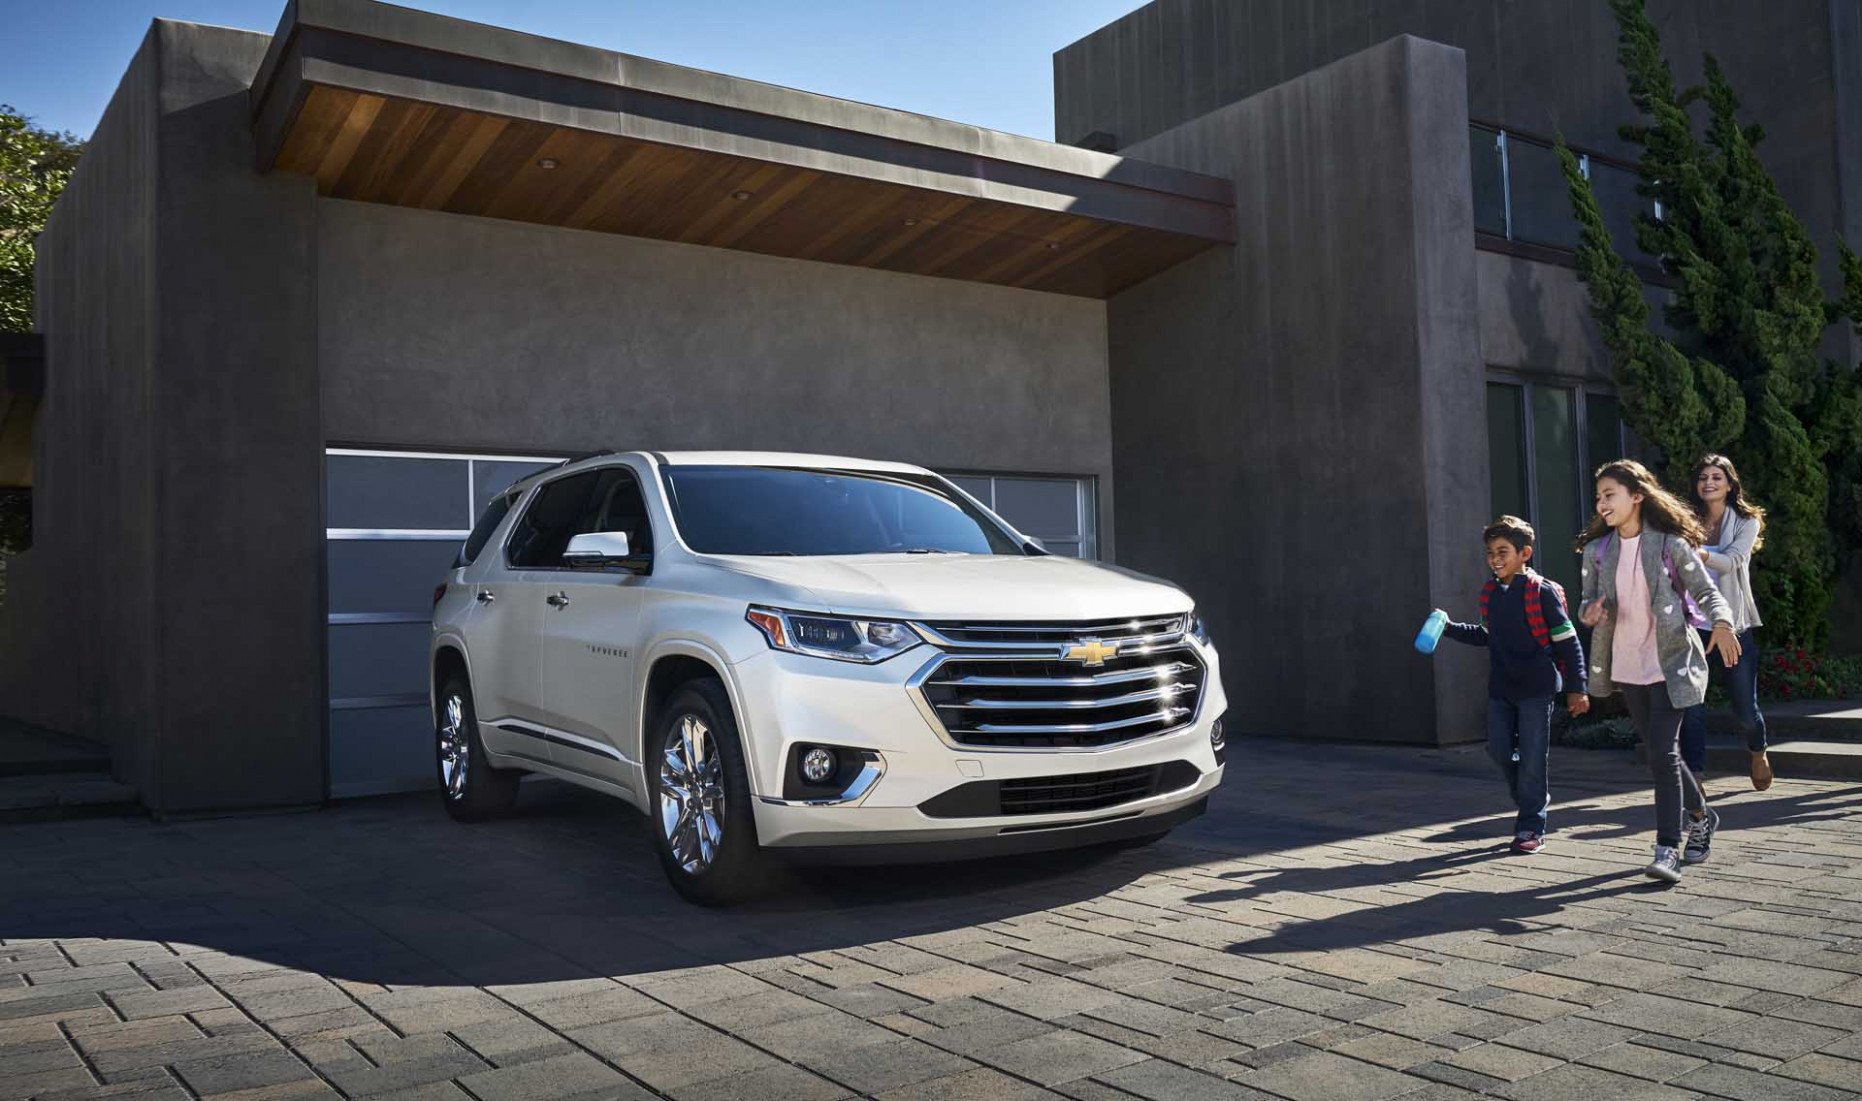 6 Chevrolet Traverse (Chevy) Review, Ratings, Specs, Prices ...